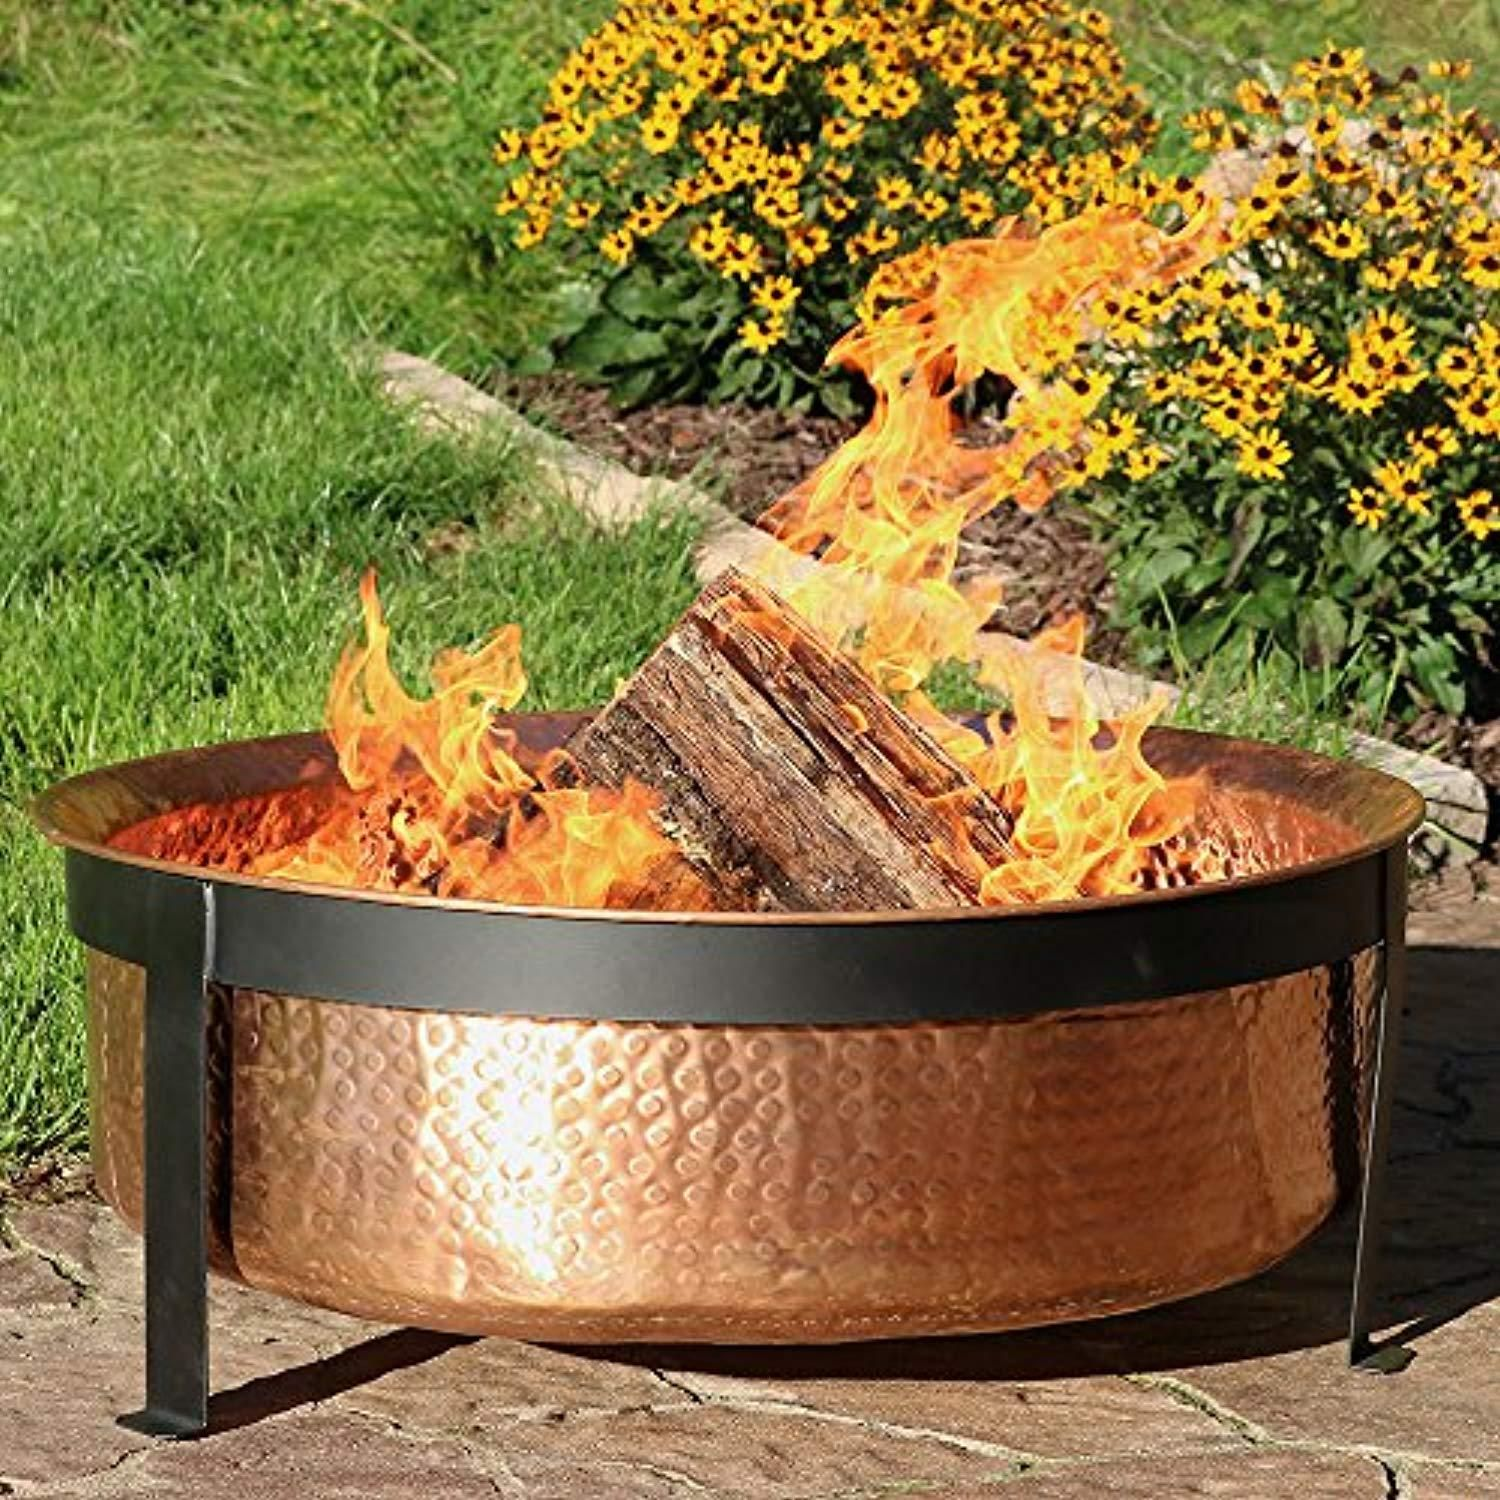 Copper Fire Bowl With Cover And Spark Screen 30 Inch Copper Fire Pit Wood Burning Fire Pit Fire Pit Backyard